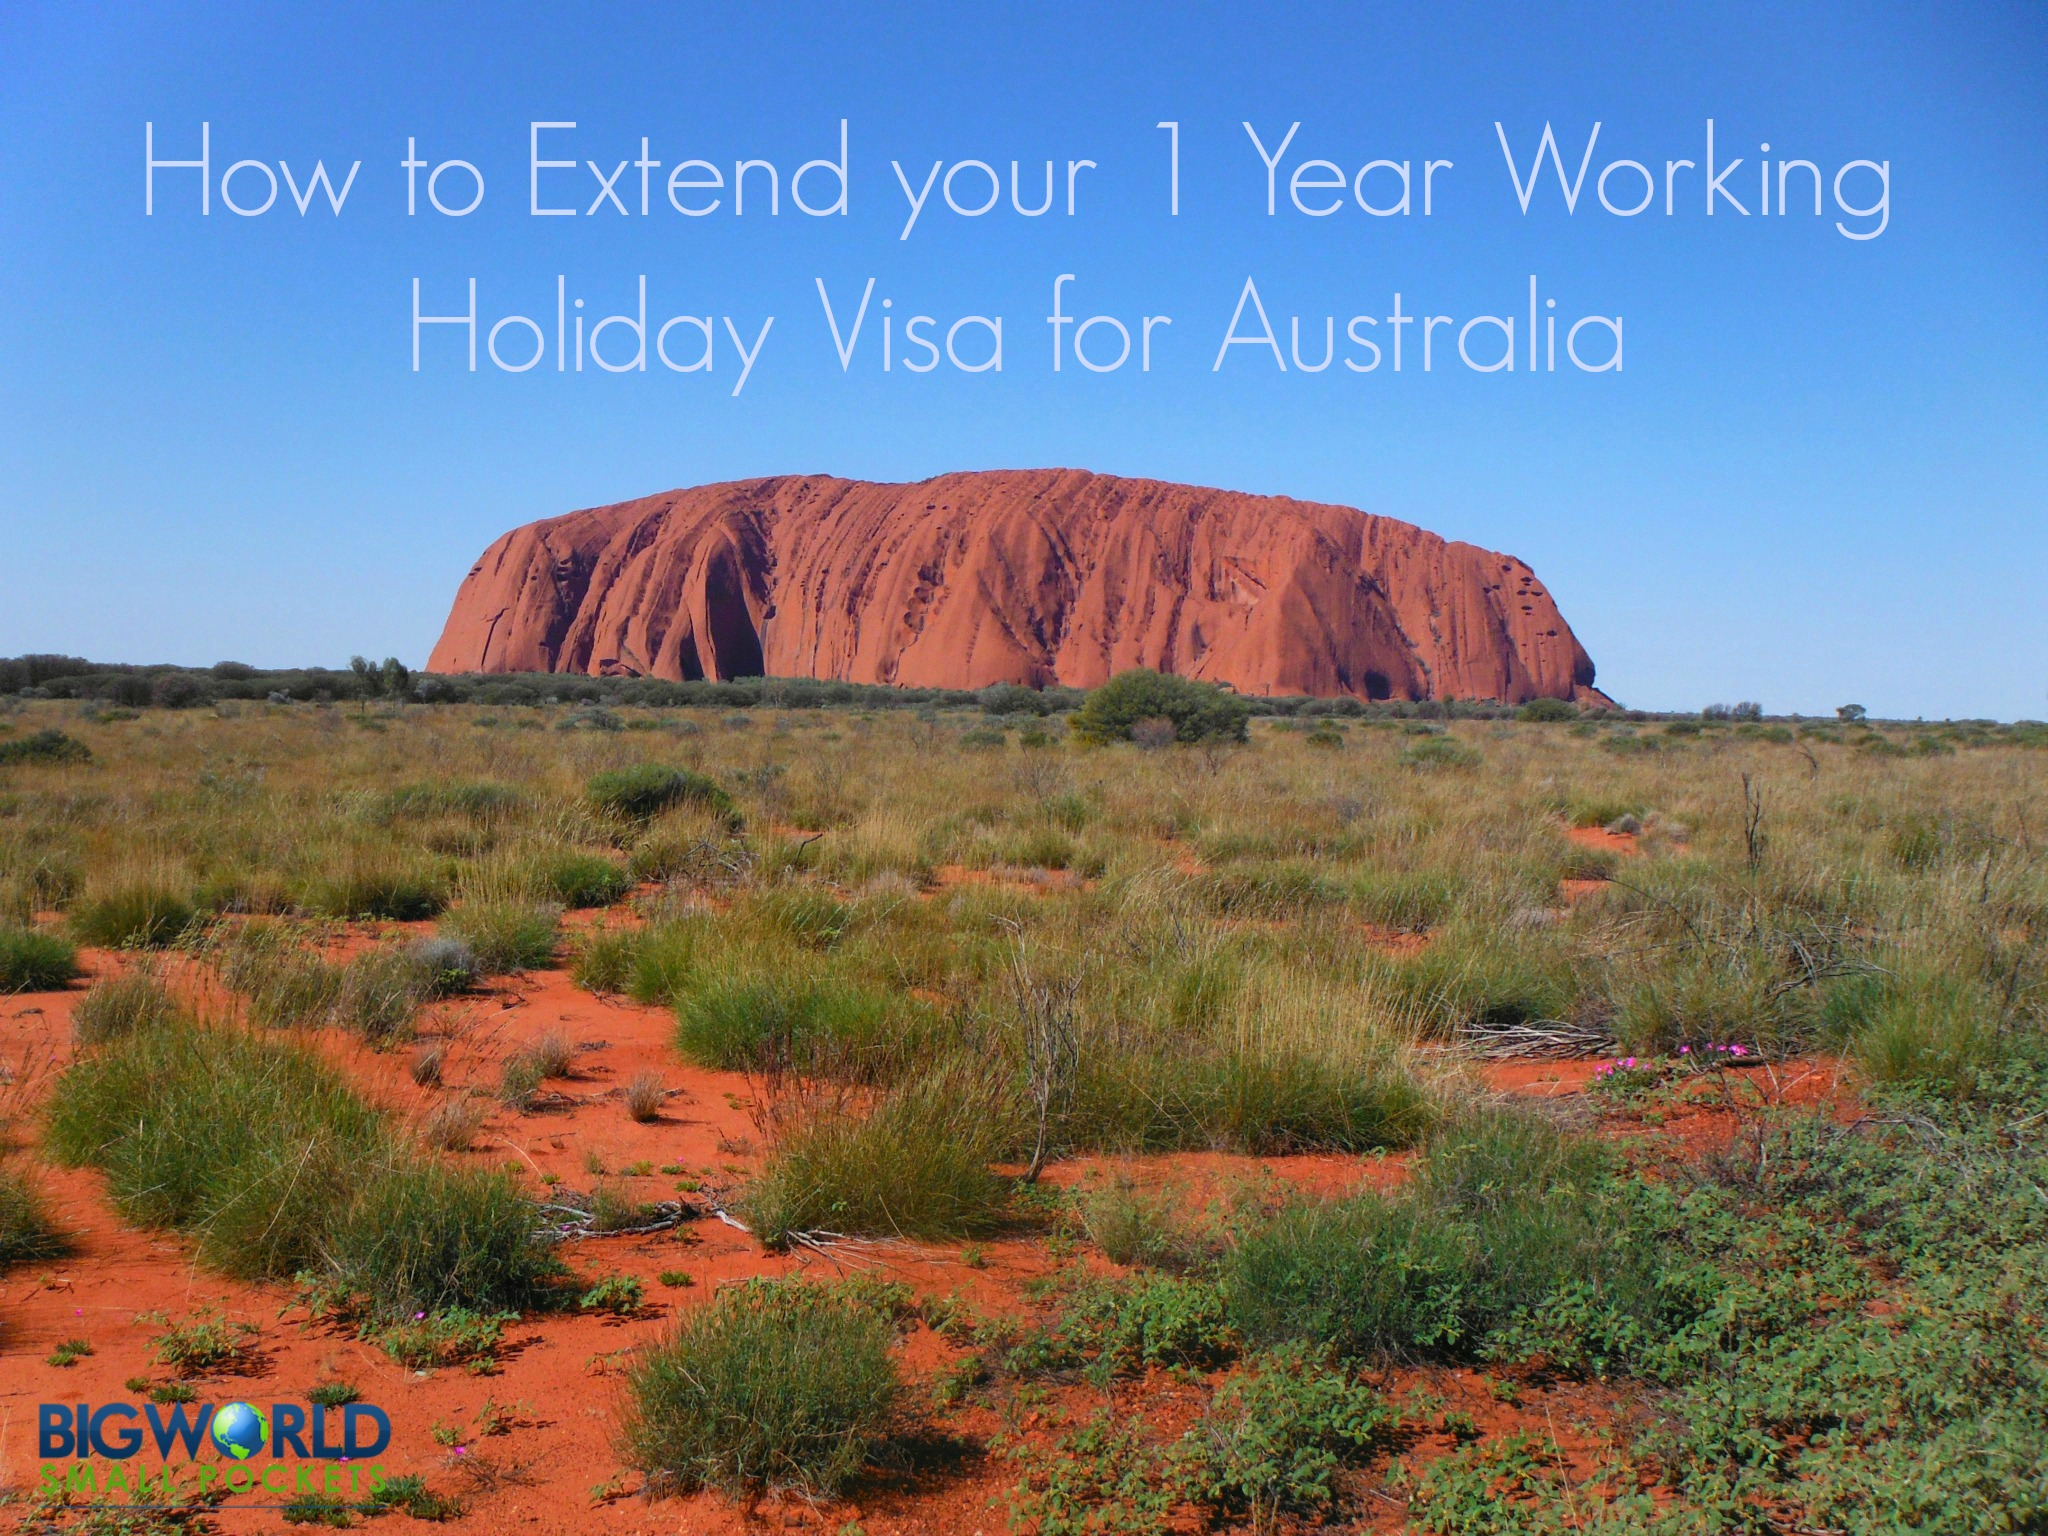 Extend your 1 Year Working Holiday Visa